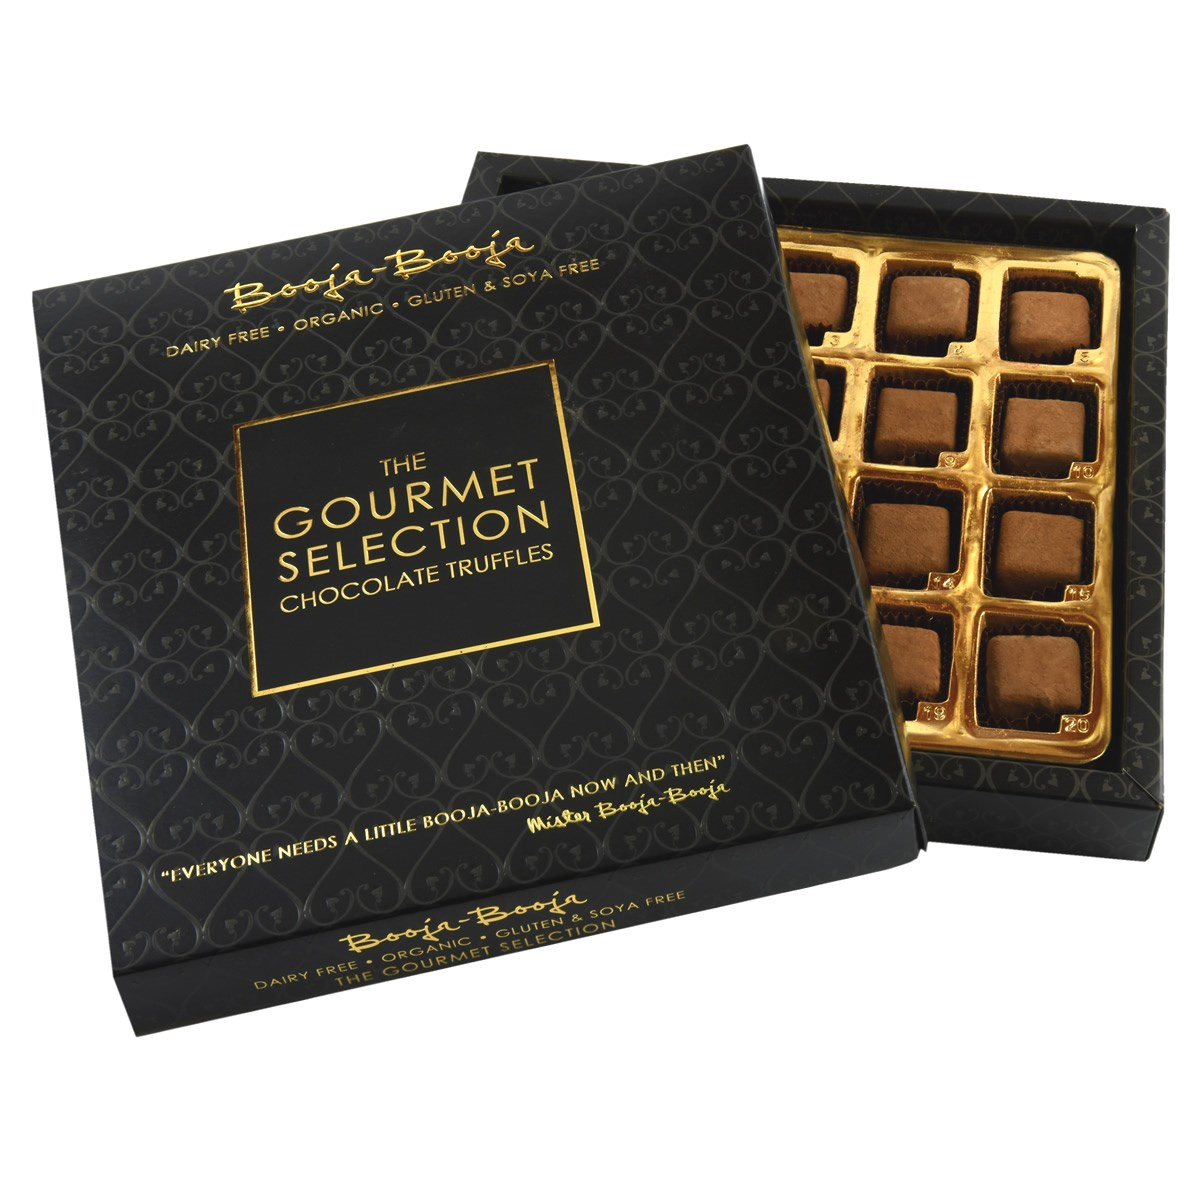 Booja-Booja The Gourmet Selection Chocolate Truffles